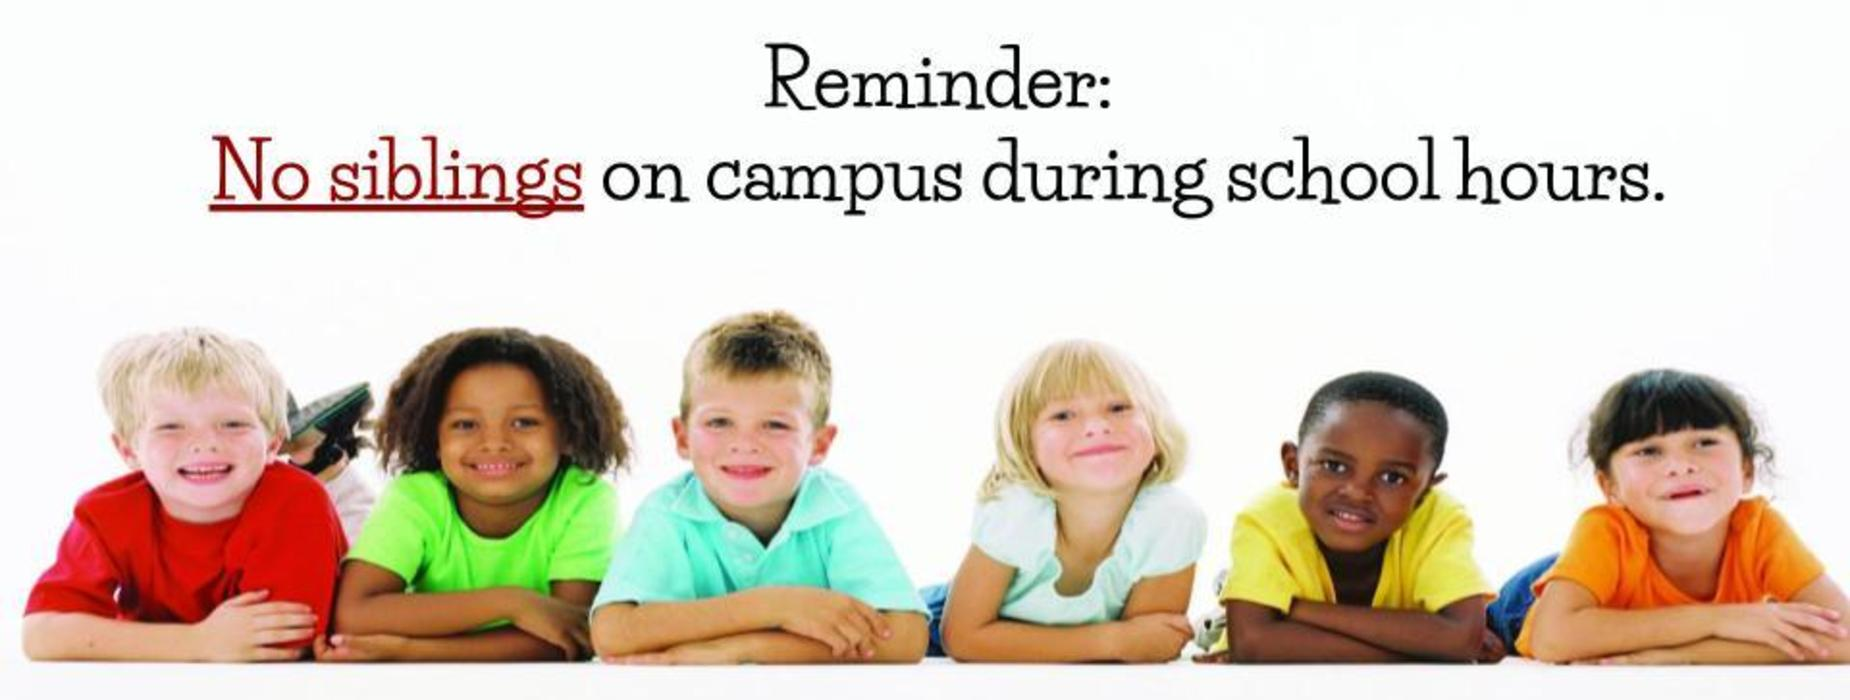 no siblings on campus during school day